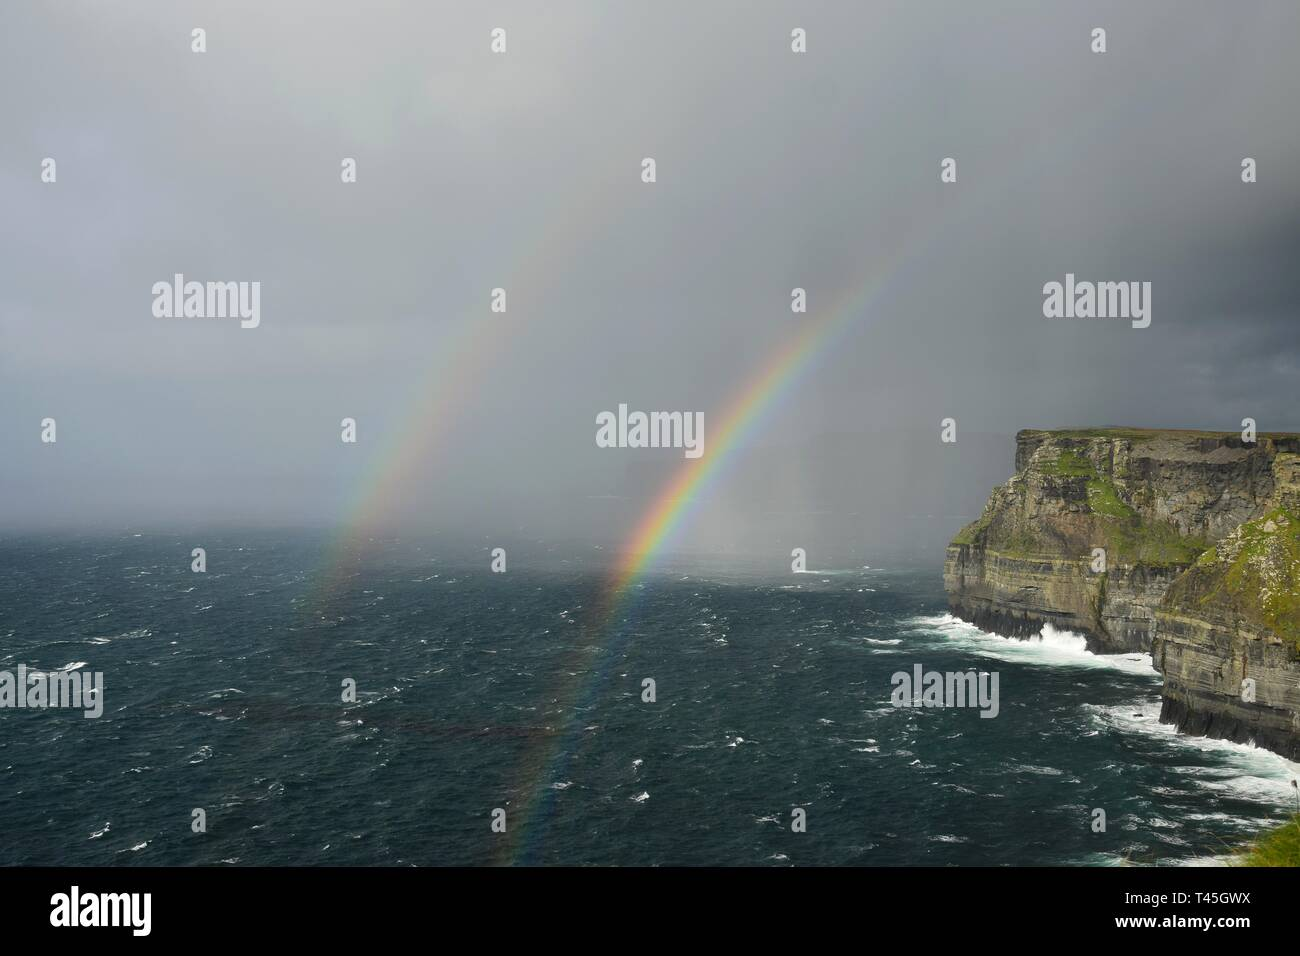 A double rainbow over the Cliffs of Moher on the west coast of Ireland in County Clare. - Stock Image